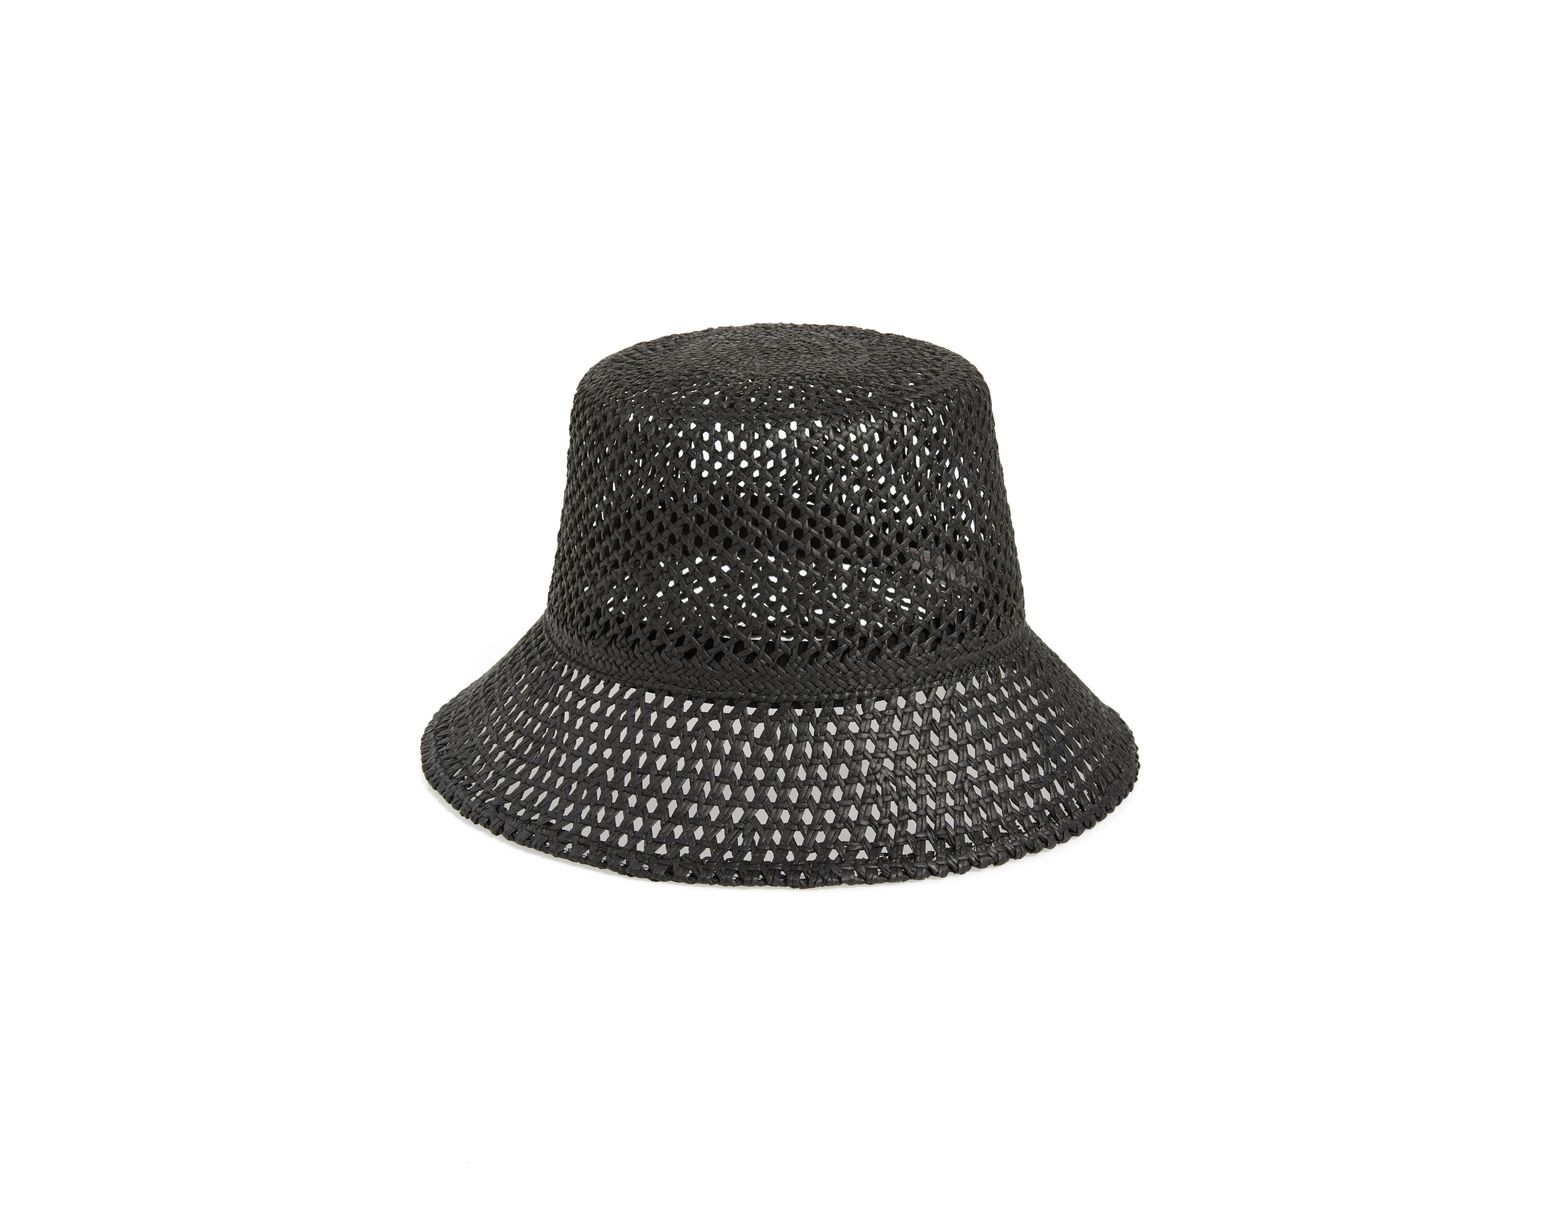 58d7e45d3b336b Nordstrom Open Weave Straw Bucket Hat in Black - Lyst